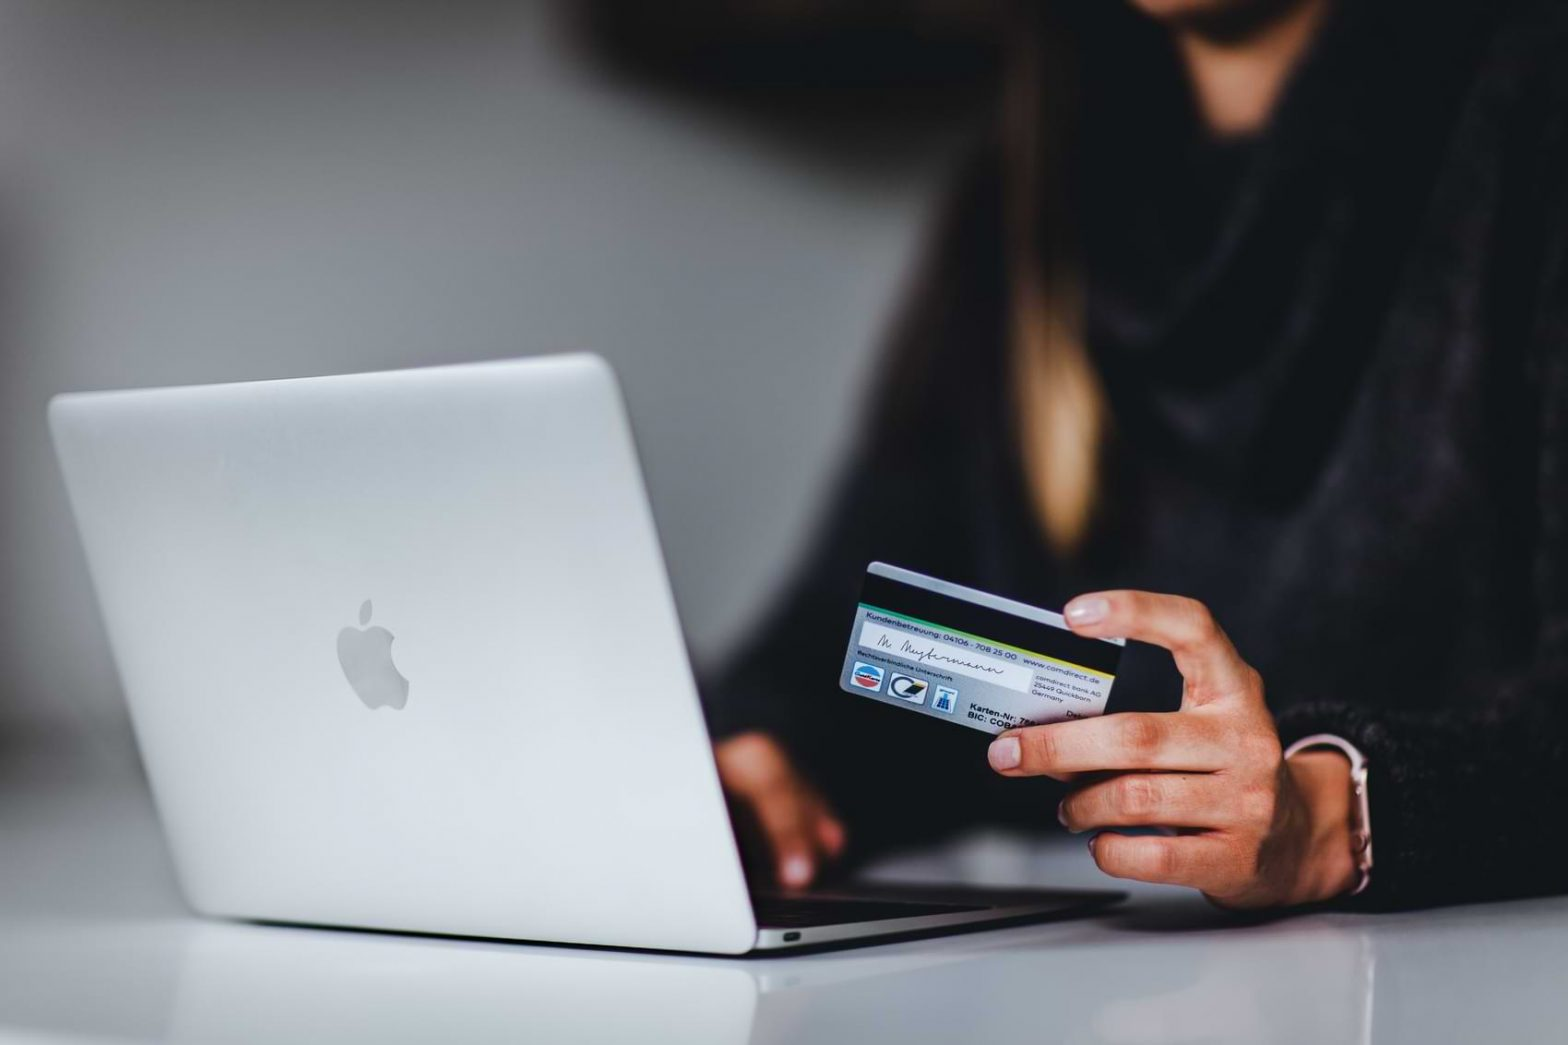 A woman enters her credit card information as she prepares to pay for a new internet plan.